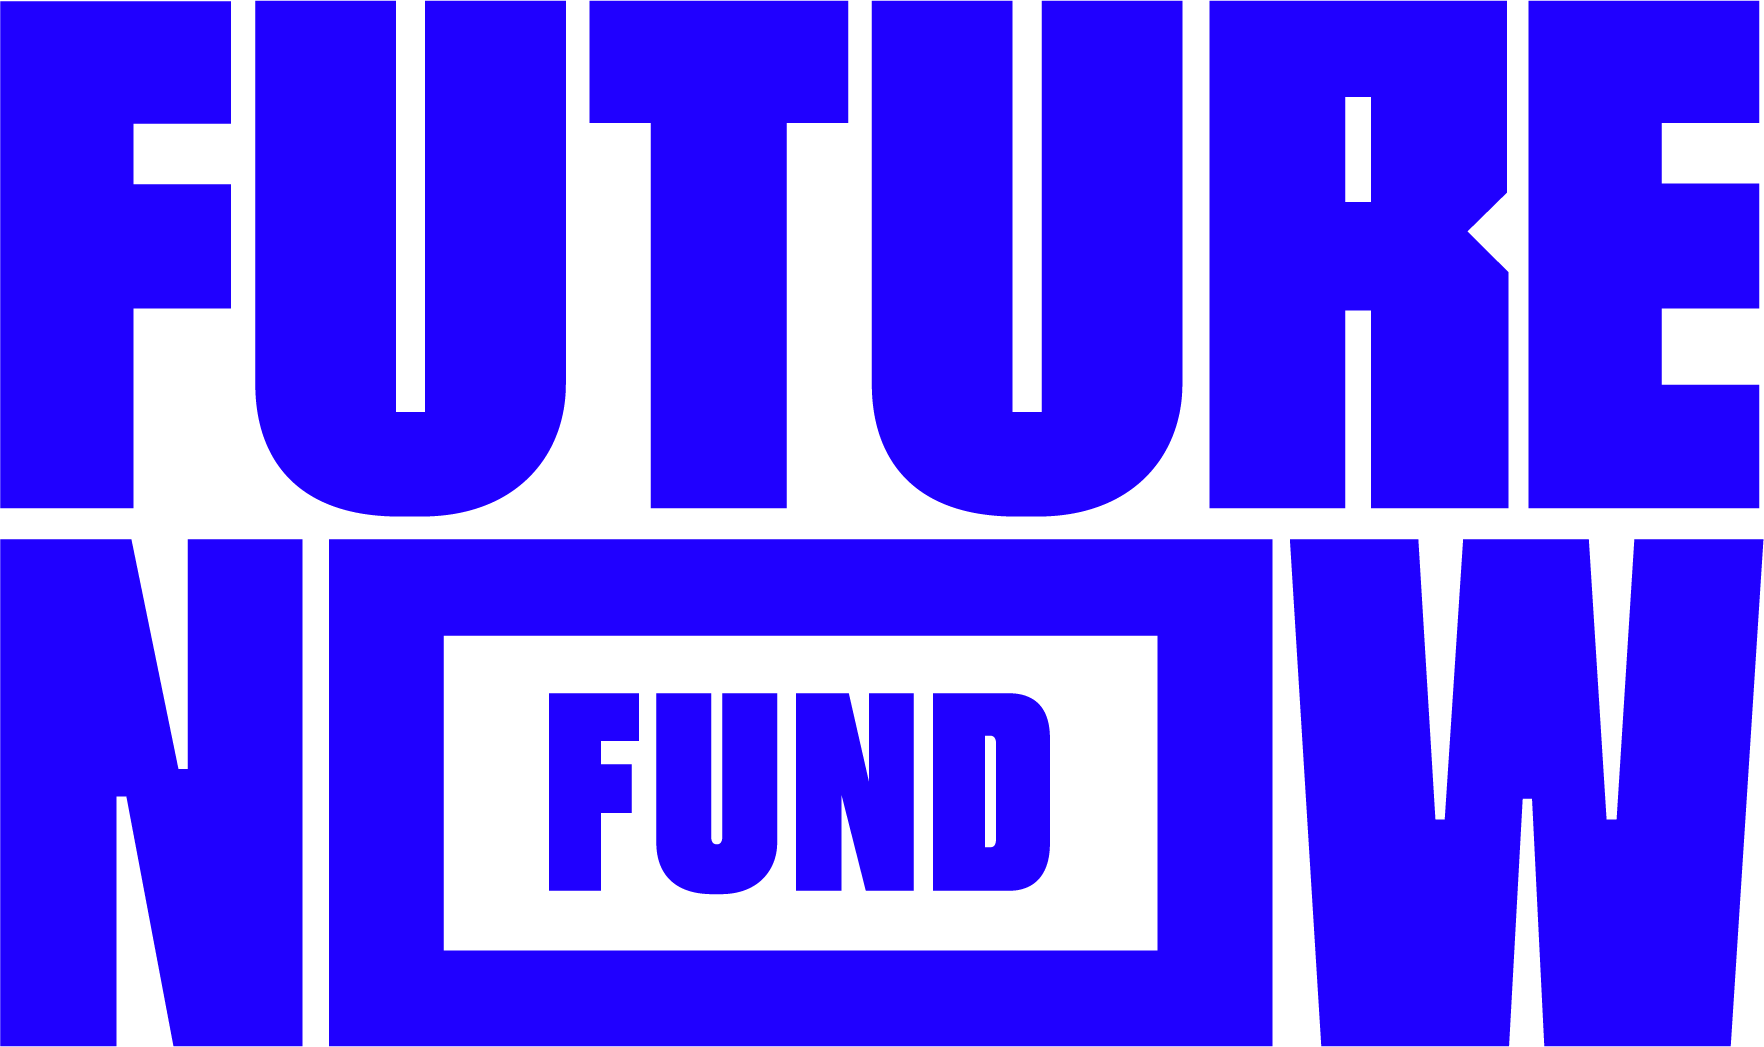 Future Now Fund - Limited